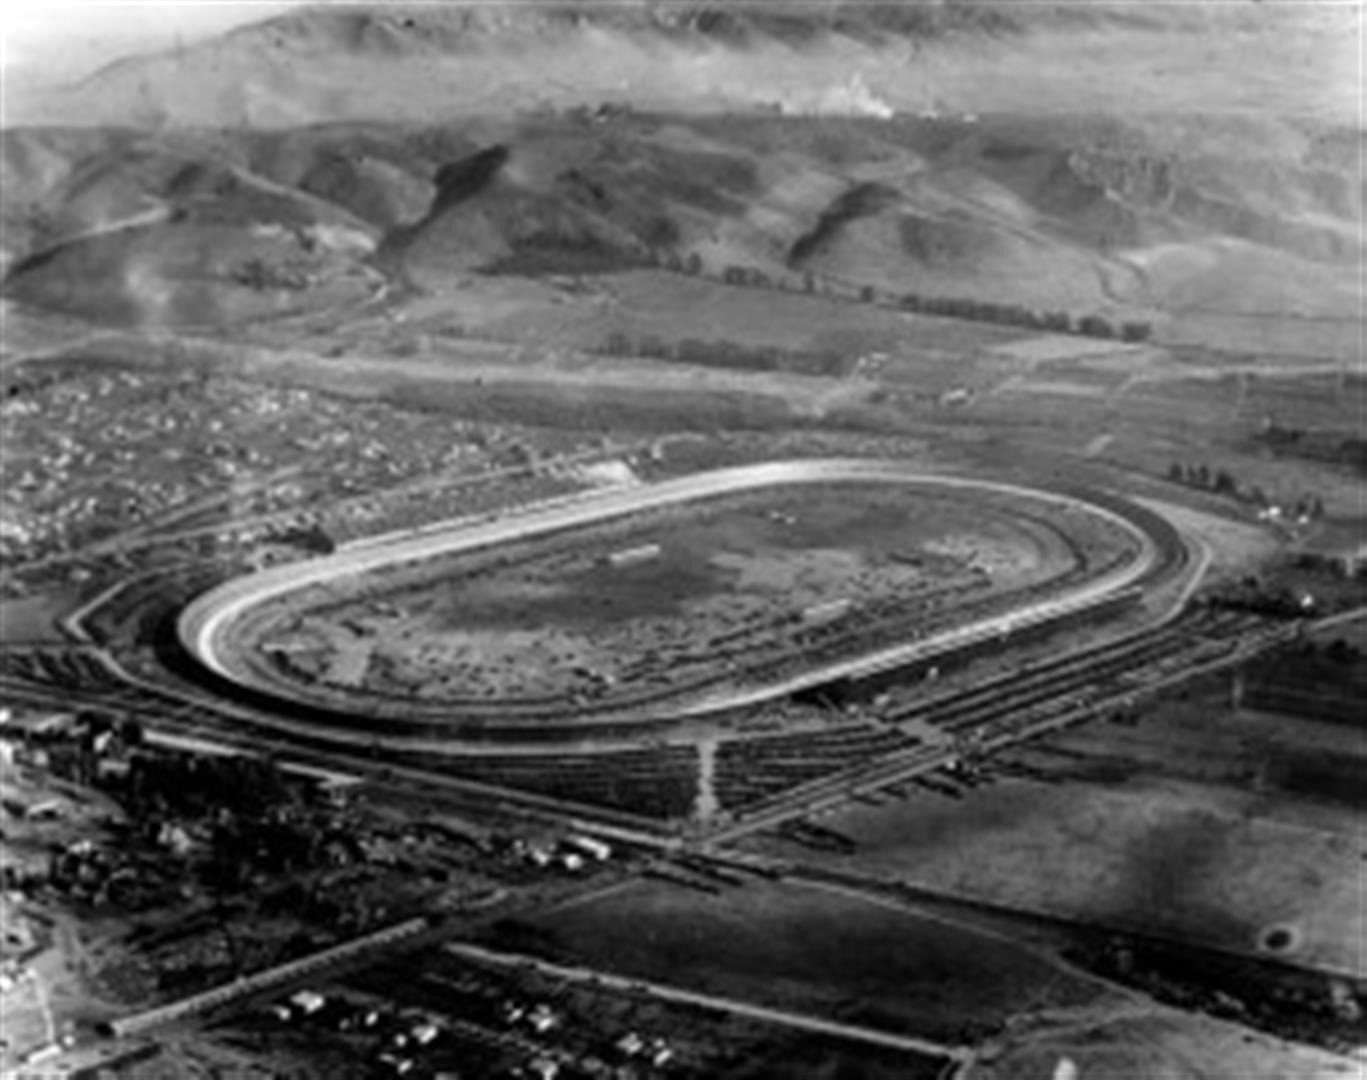 The Historic Culver City Racing Scene on dirt track stock car racing